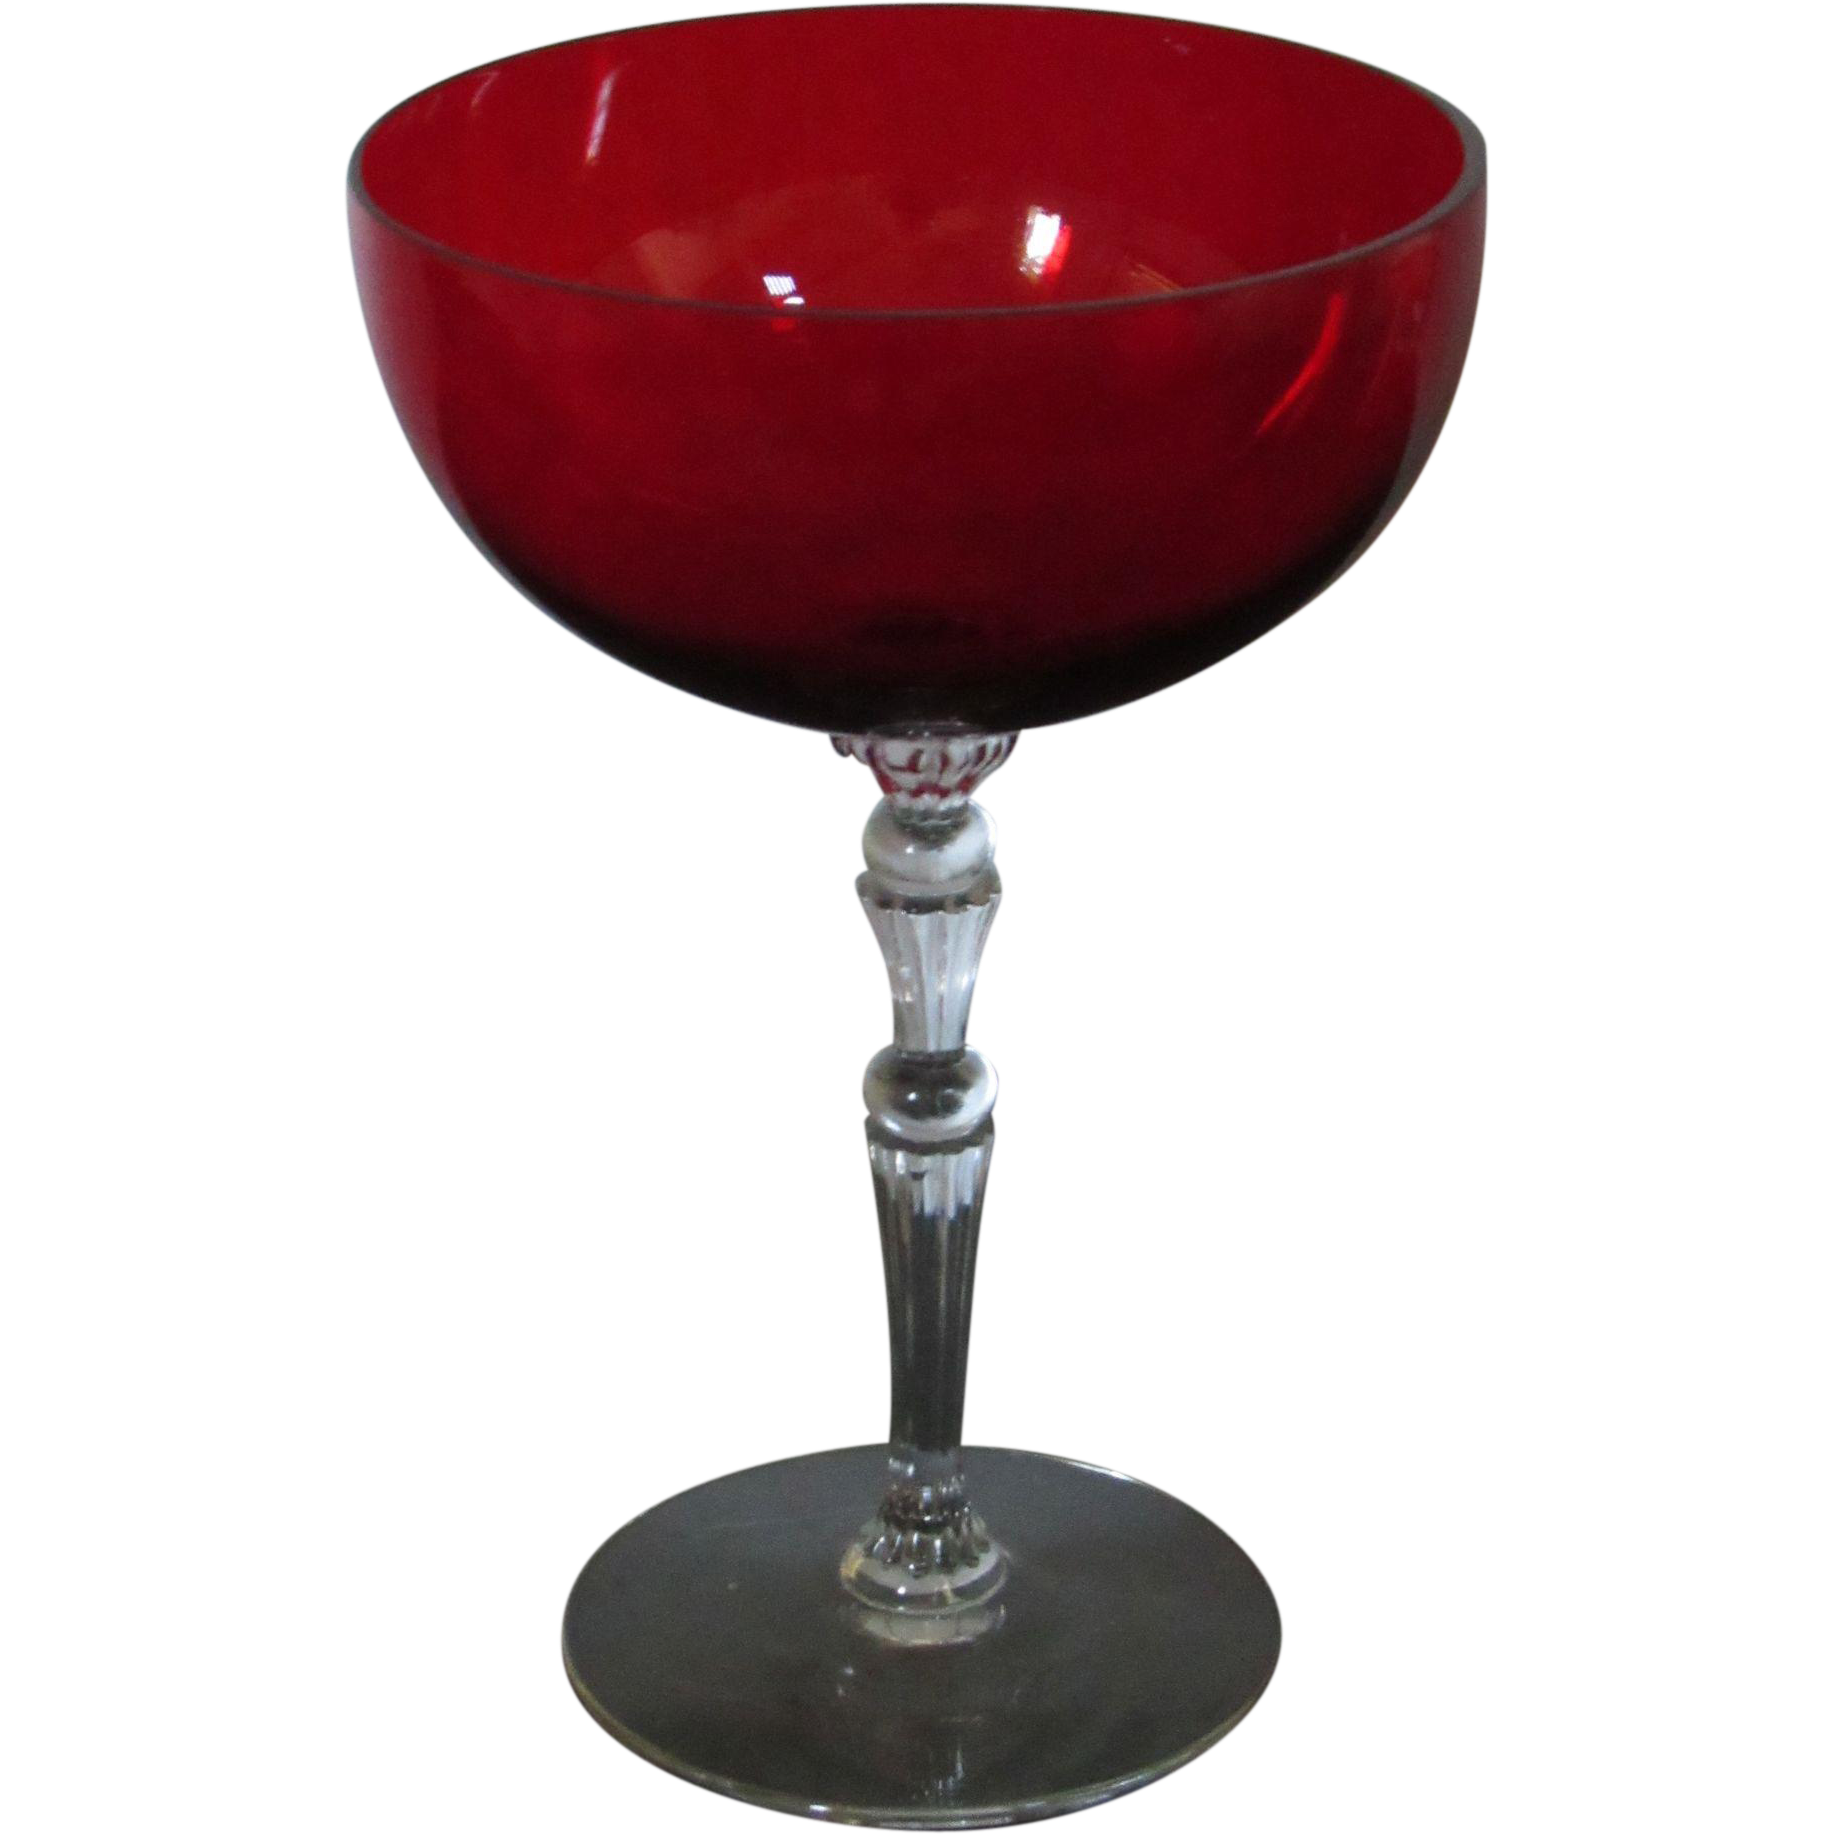 Morgantown Majesty Spanish Red tall champagne glass